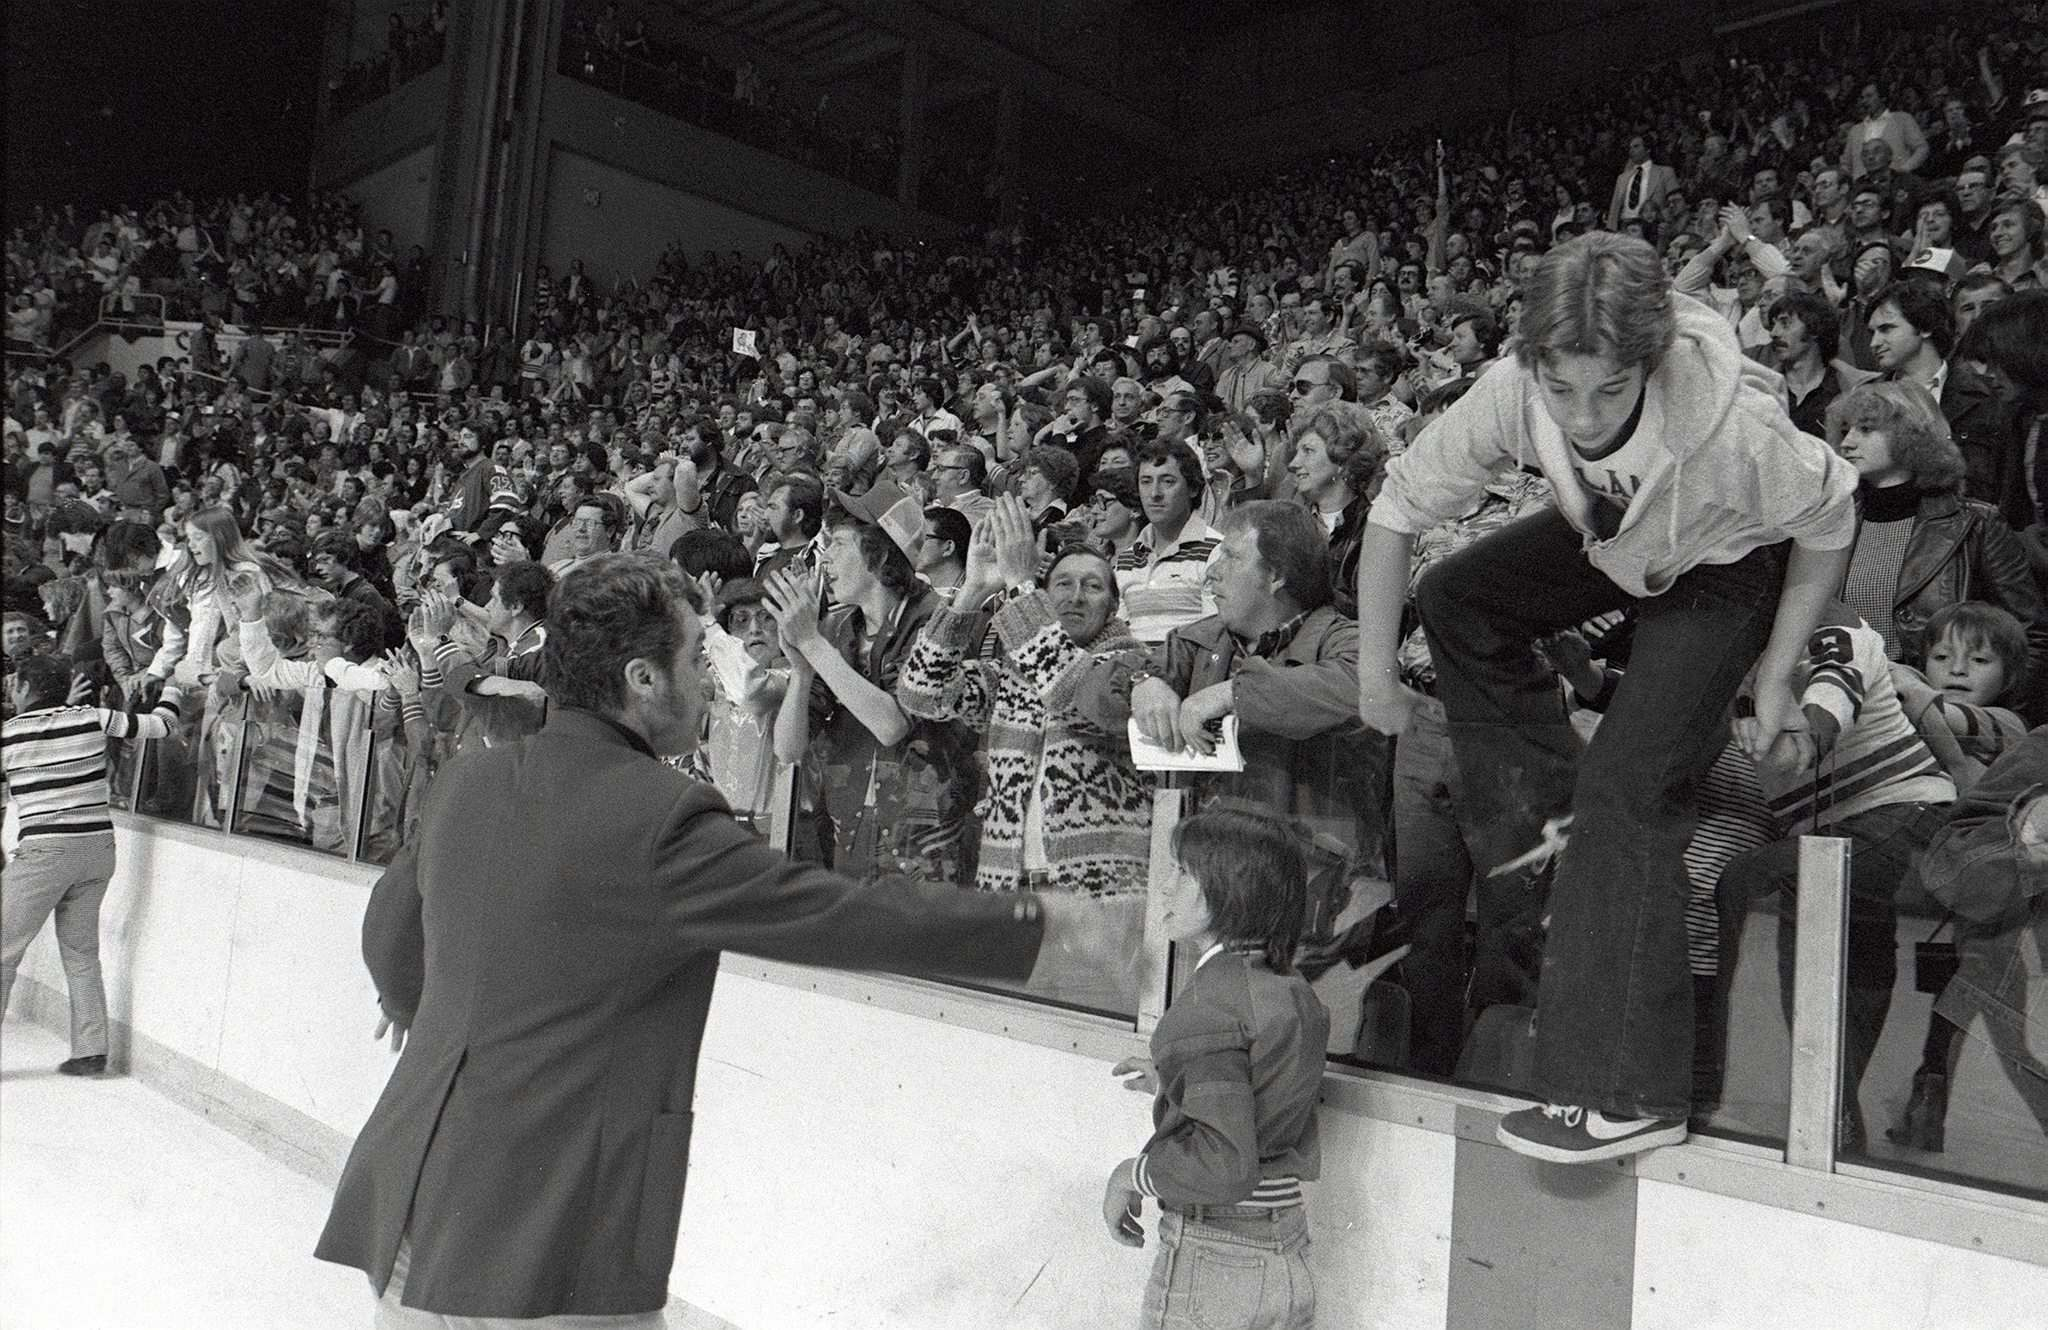 JON THORDARSON / WINNIPEG FREE PRESS FILES</p><p>Elated fans invade the ice surface to join their hockey heroes in celebrating the Jets' 1979 Avco Cup triumph.</p>